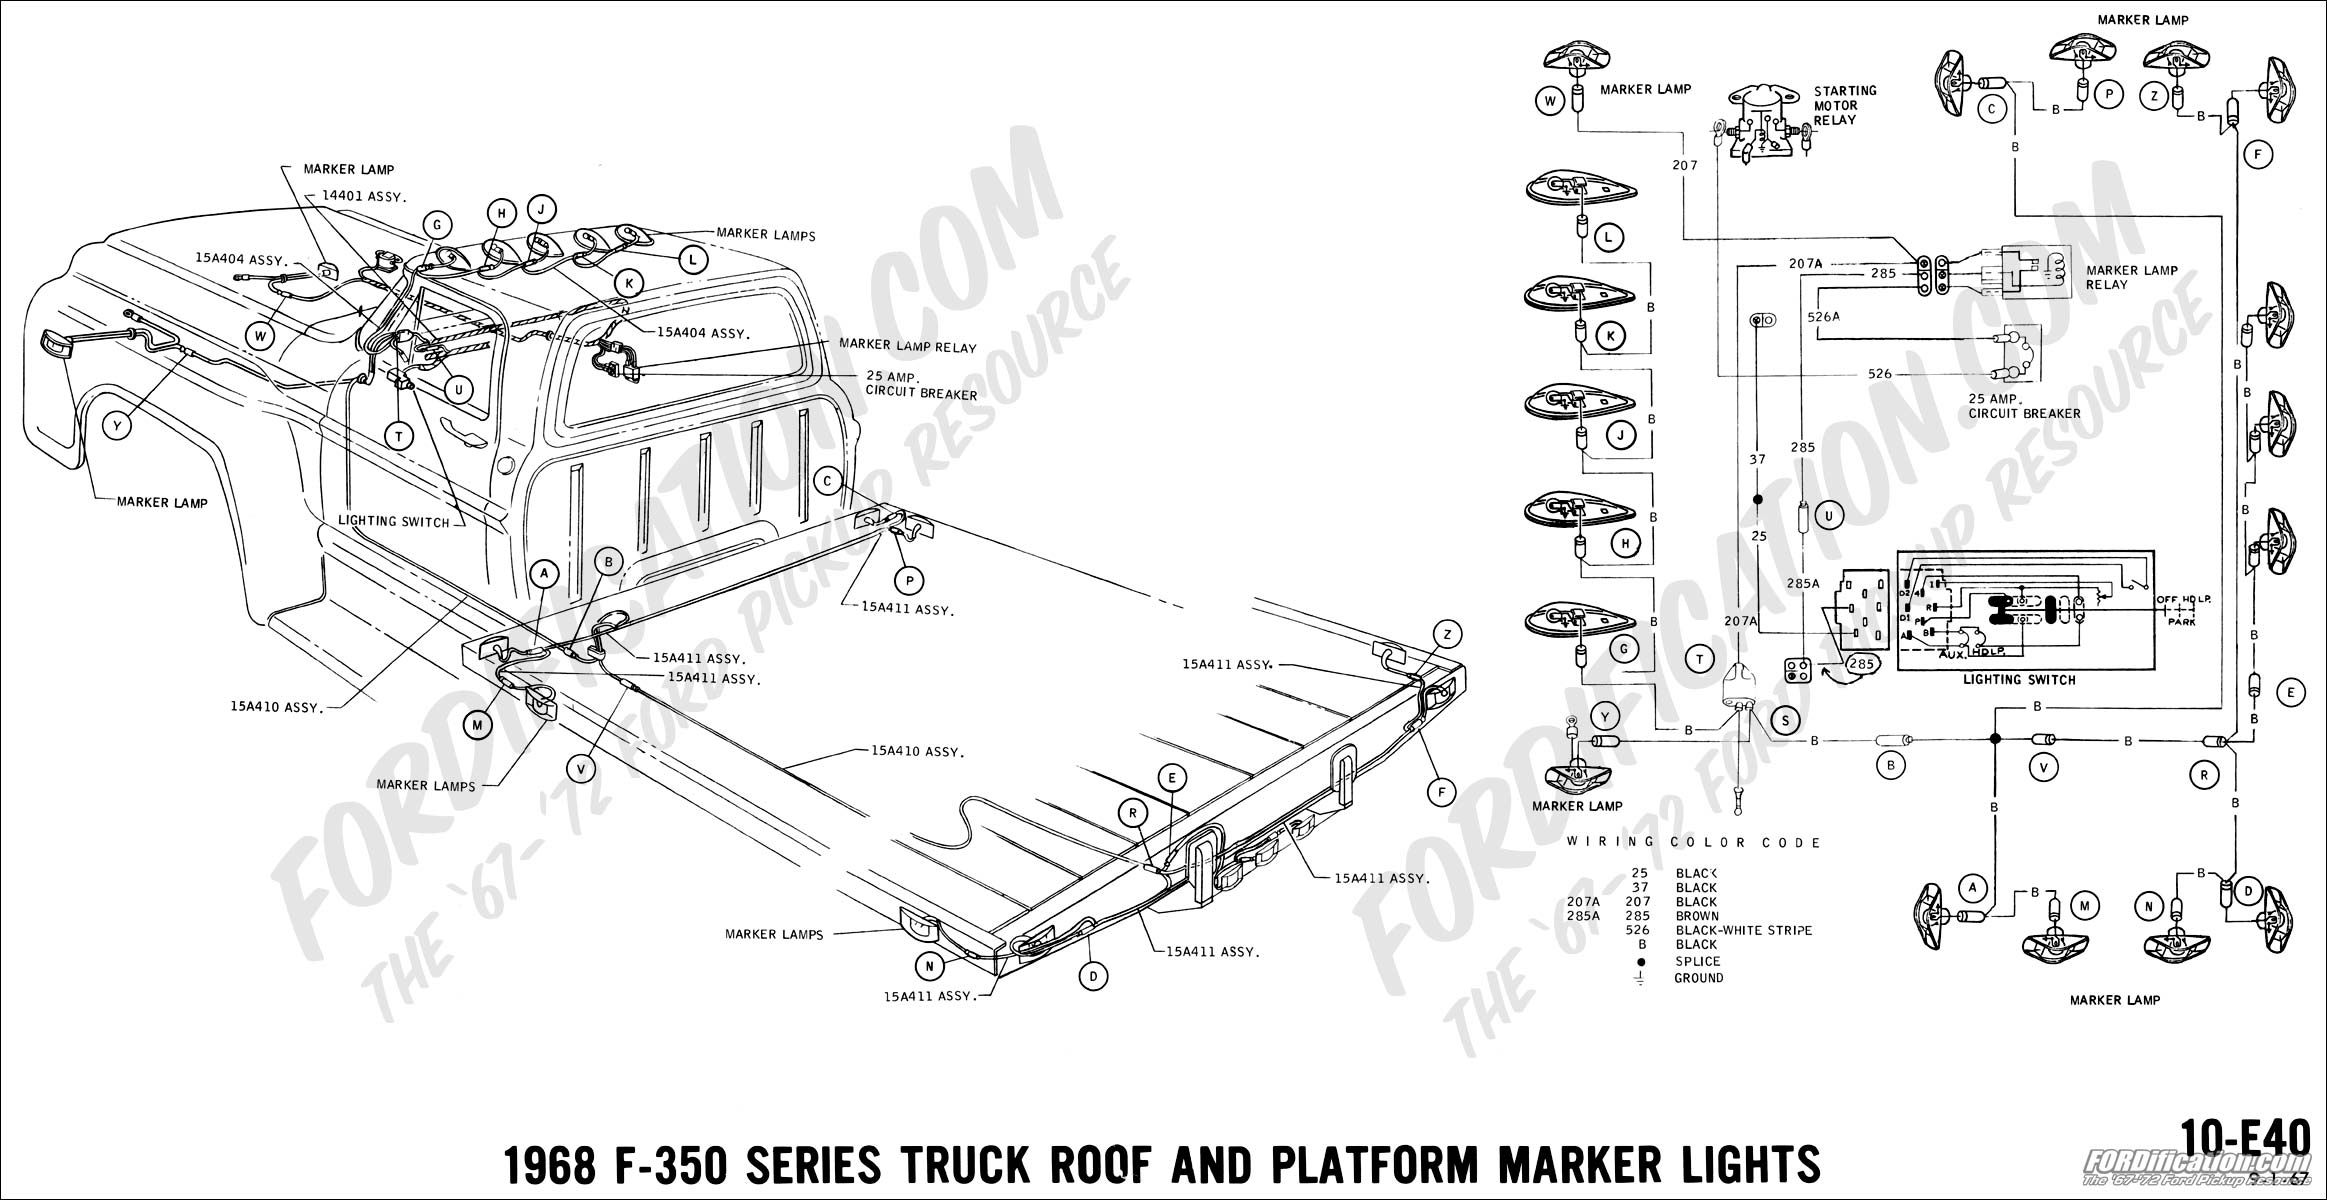 2006 sterling wiring diagrams 2006 manual repair wiring and engine peterbilt 379 air conditioning wiring diagram